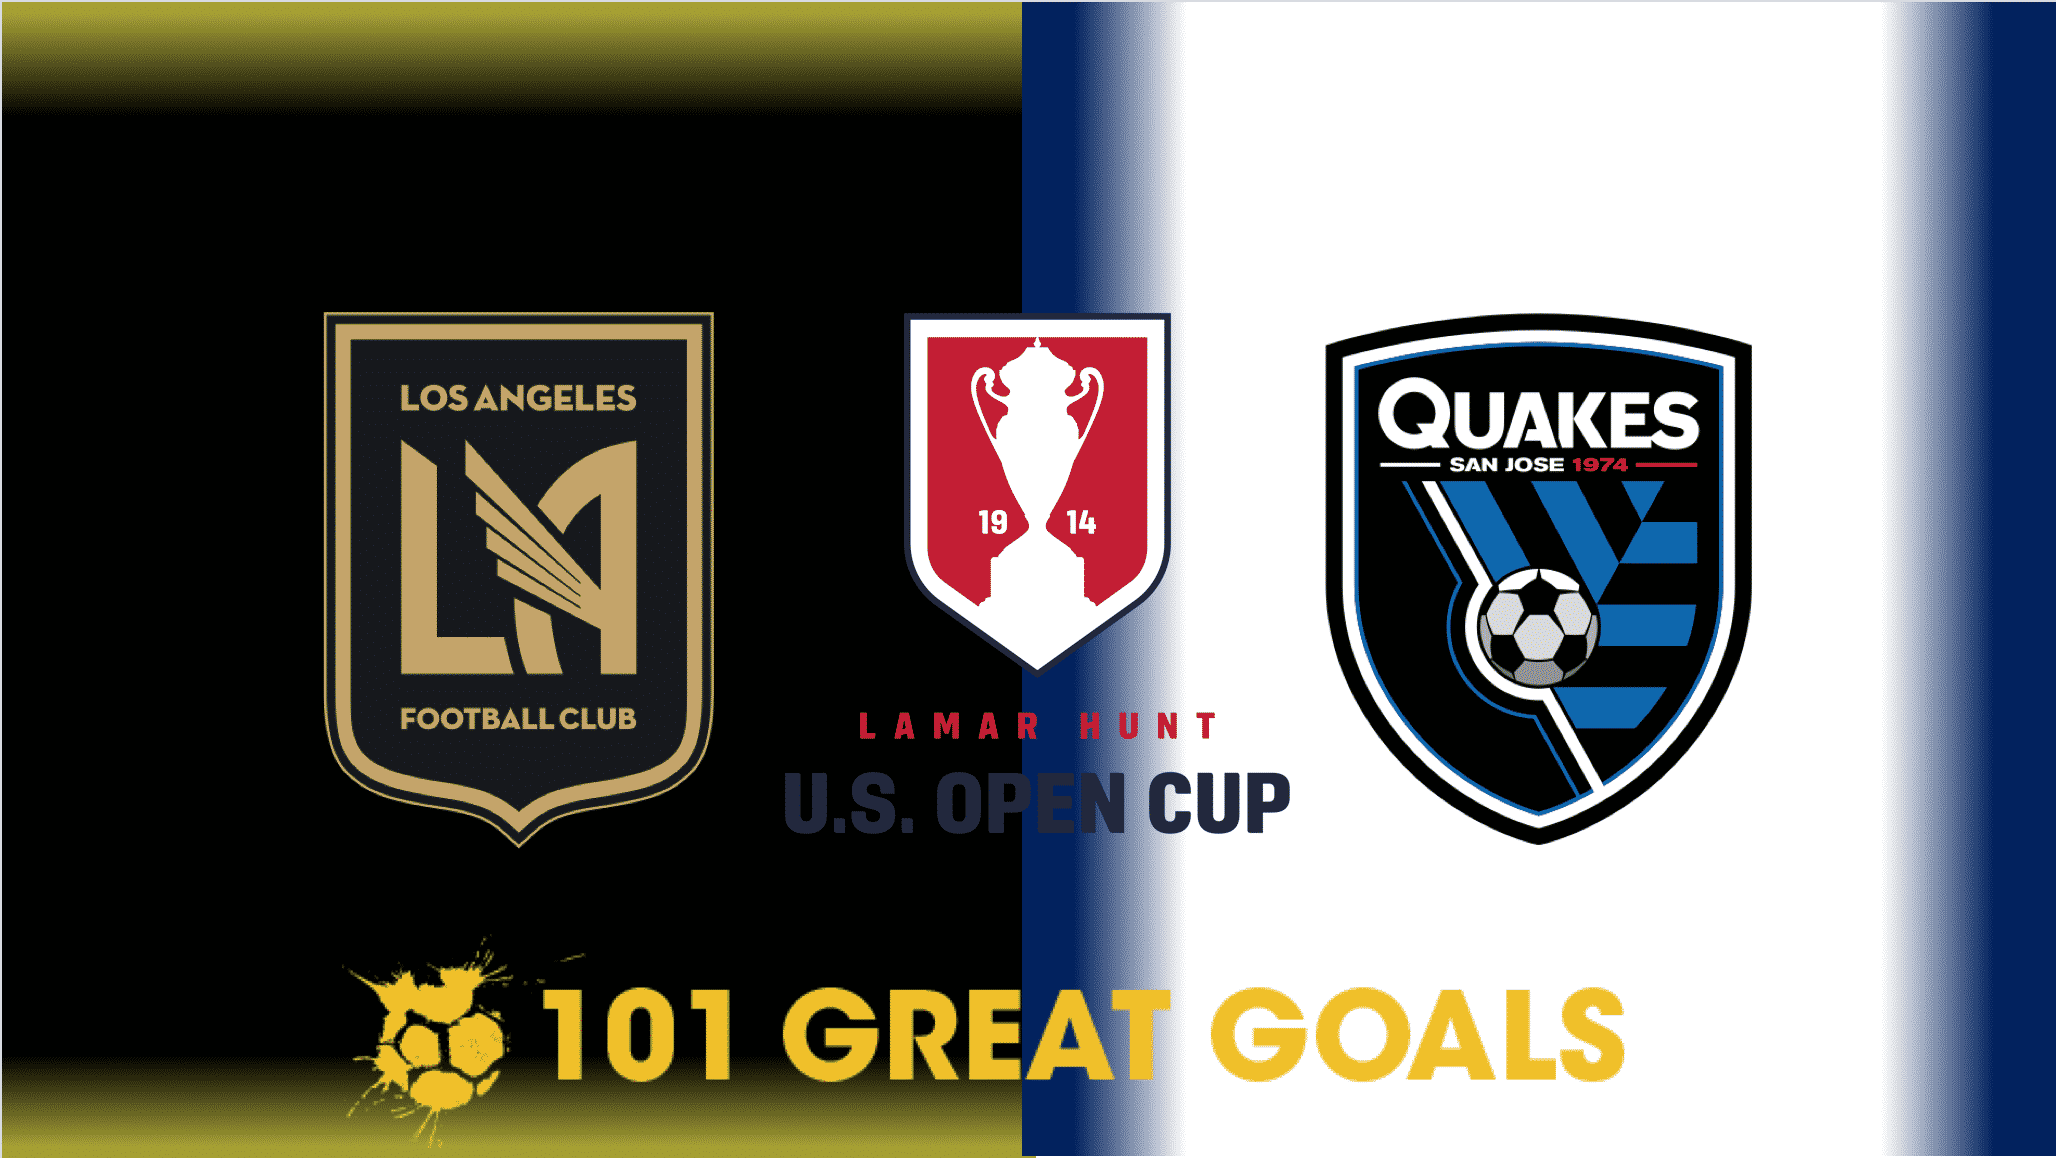 Los Angeles vs San Jose Earthquakes live streaming